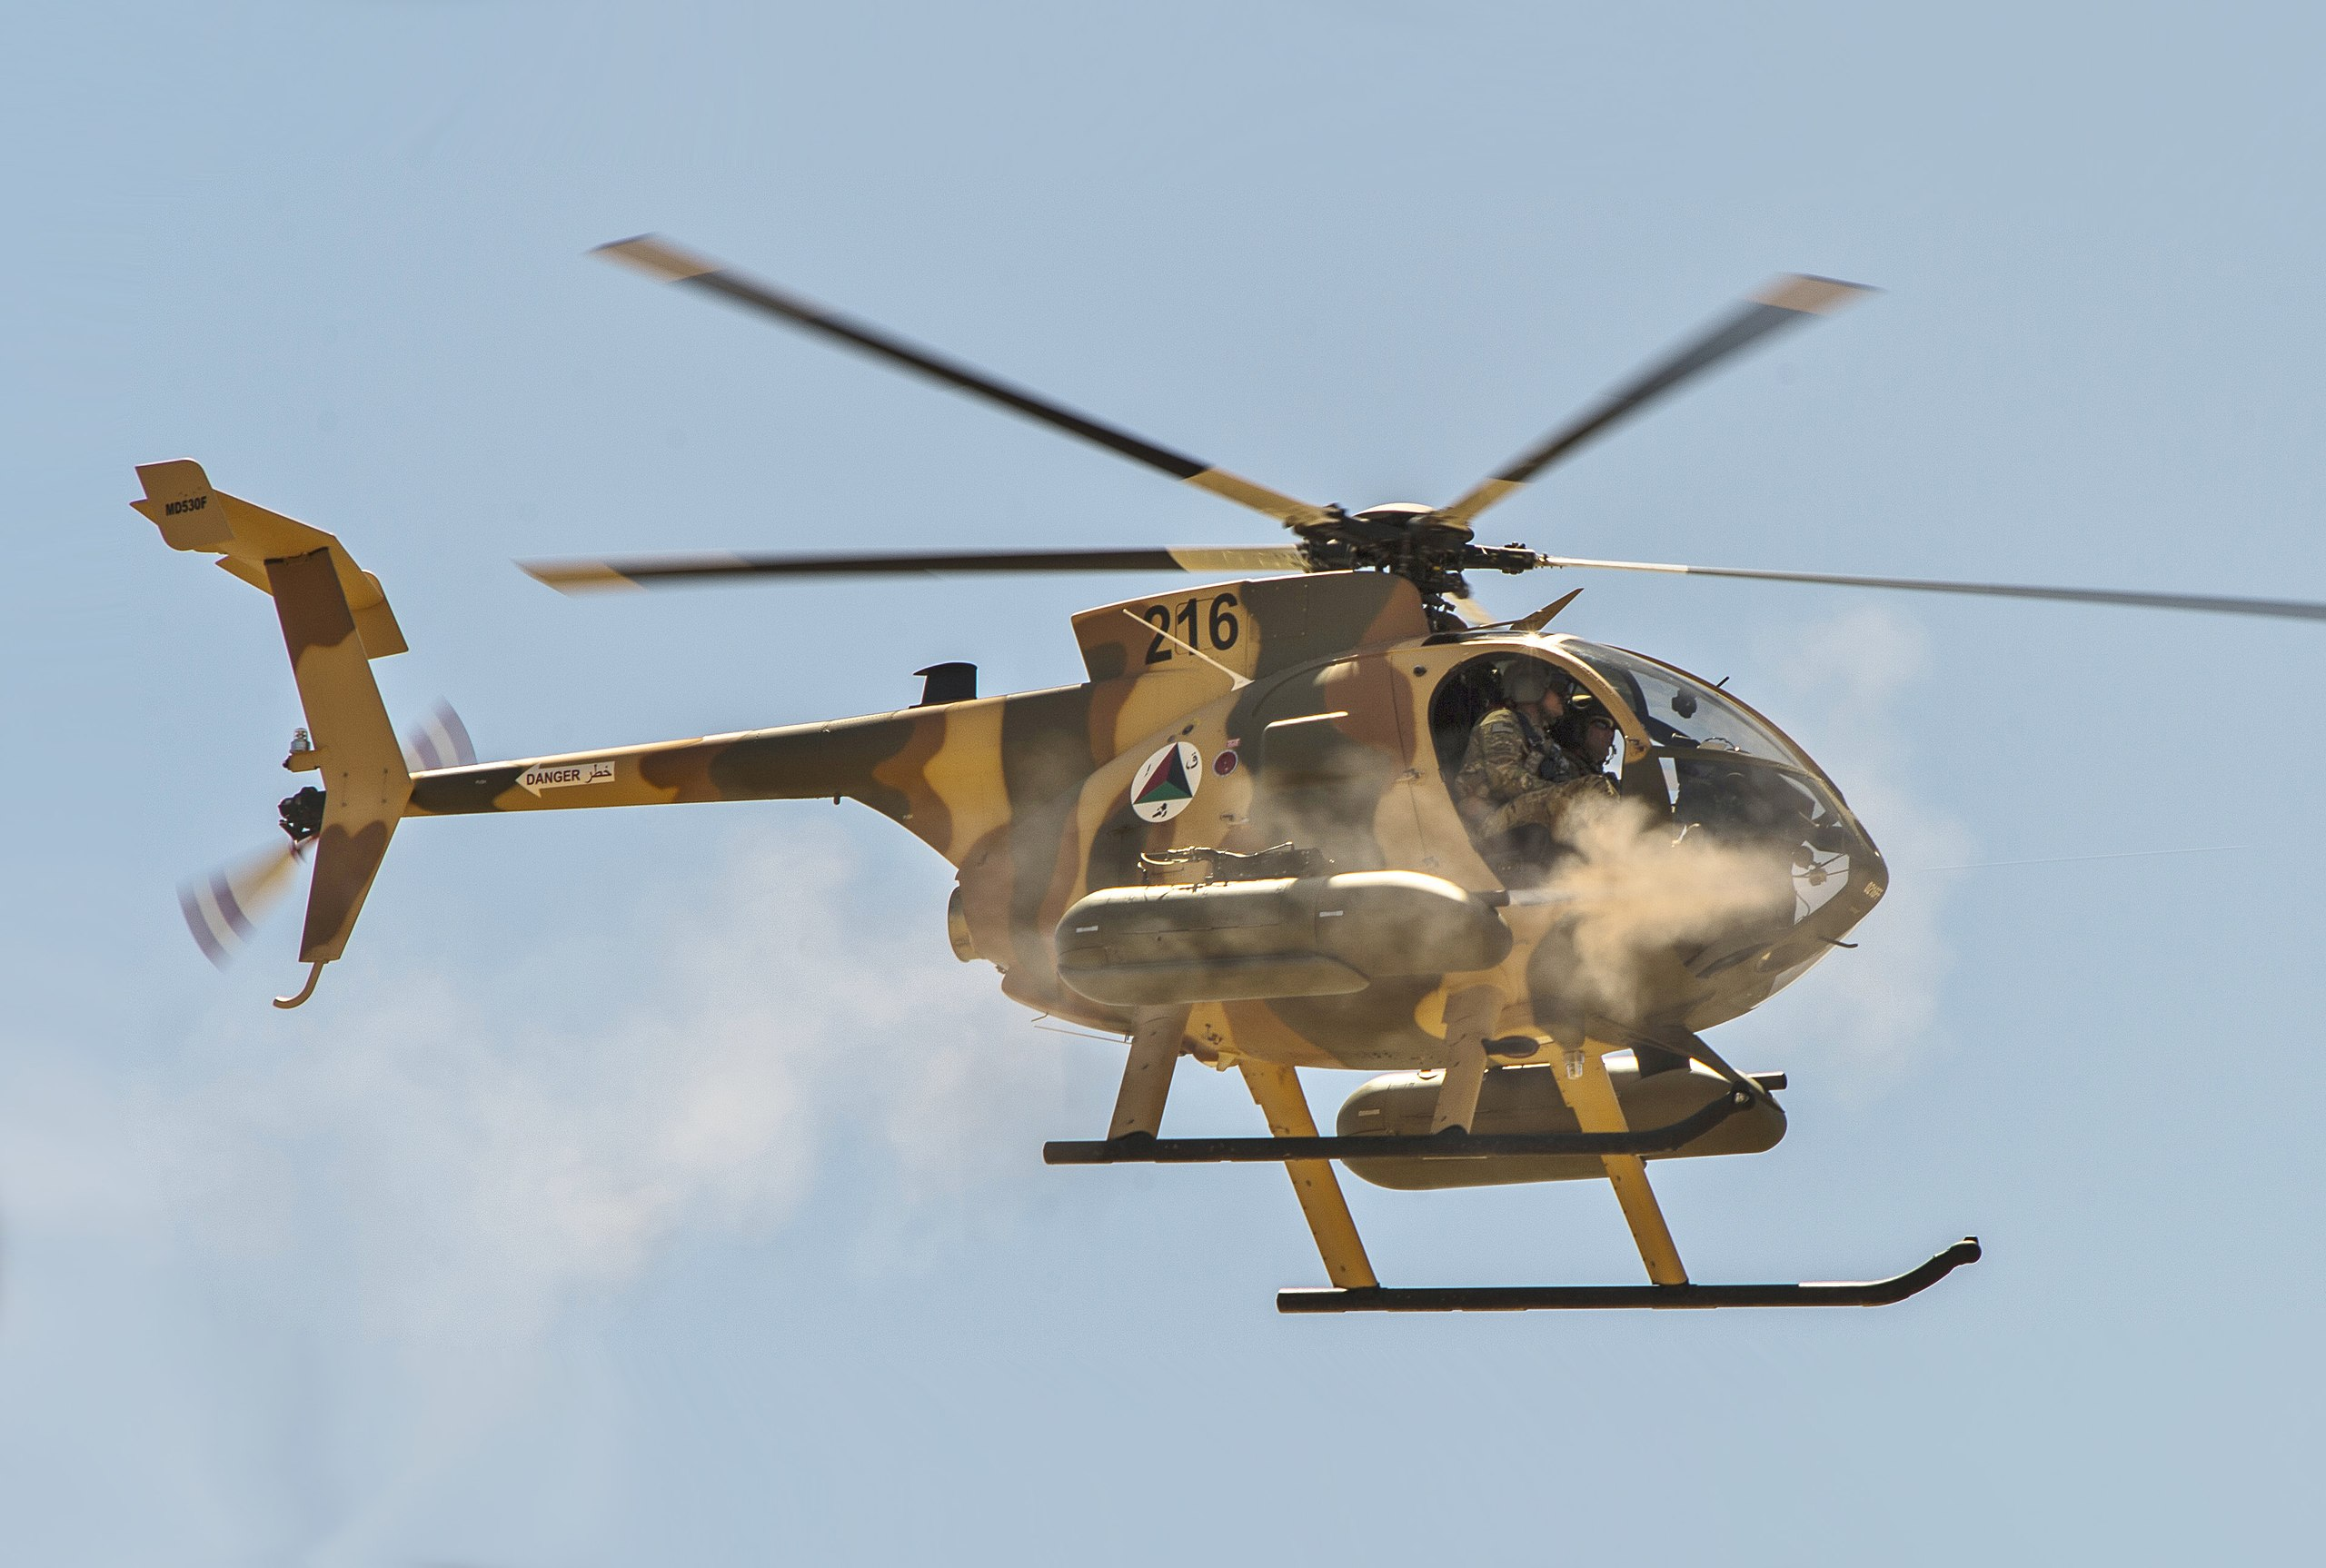 Taliban Claims It Shot Down Attack Helicopter, Afghan MoD Denies (Video, Photos)